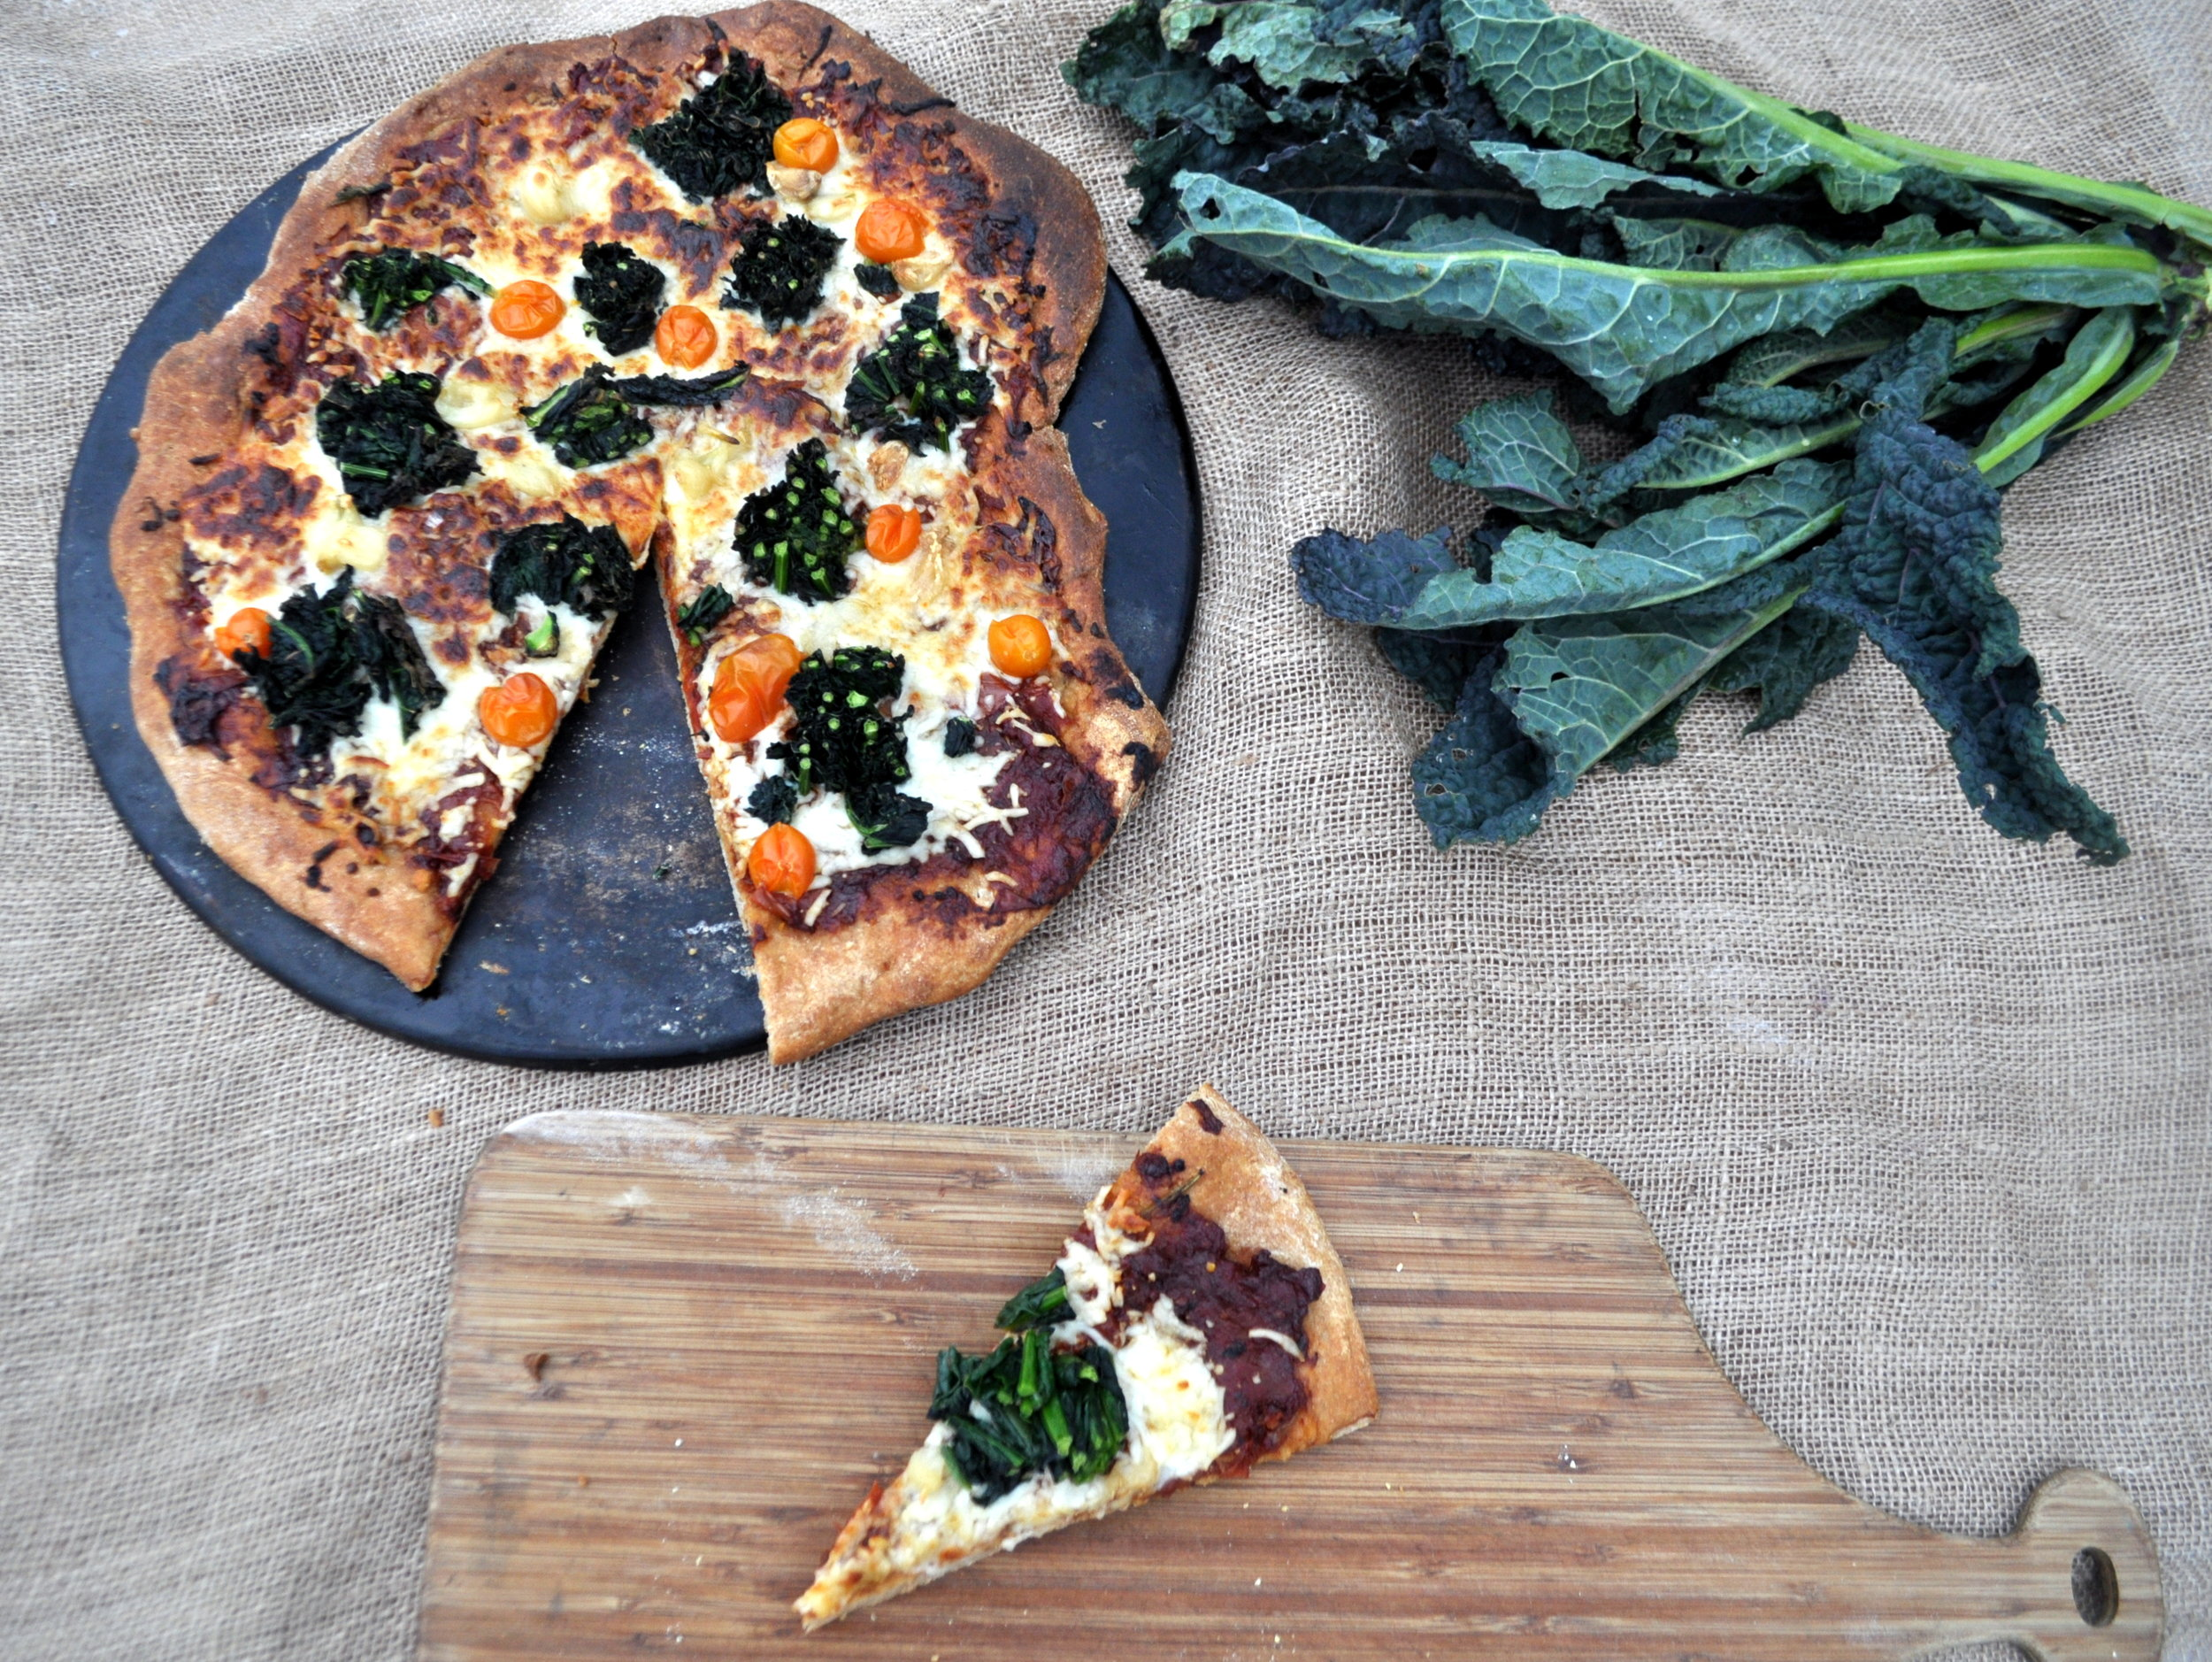 You can also read this recipe in our 'Eat Like a Farmer' column right    here    in the News-Review.